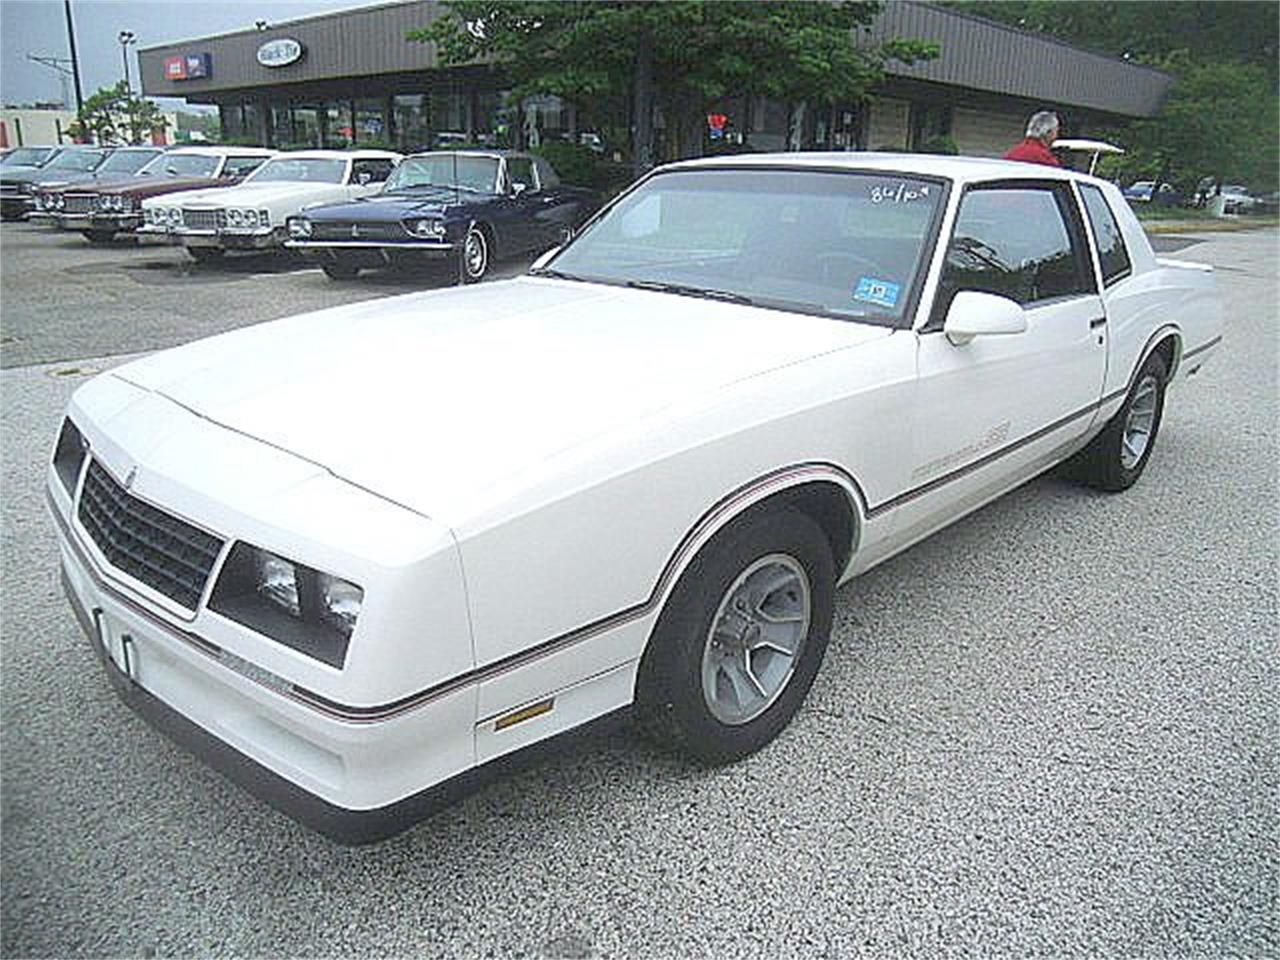 1985 to 1987 chevrolet monte carlo ss for sale. Black Bedroom Furniture Sets. Home Design Ideas